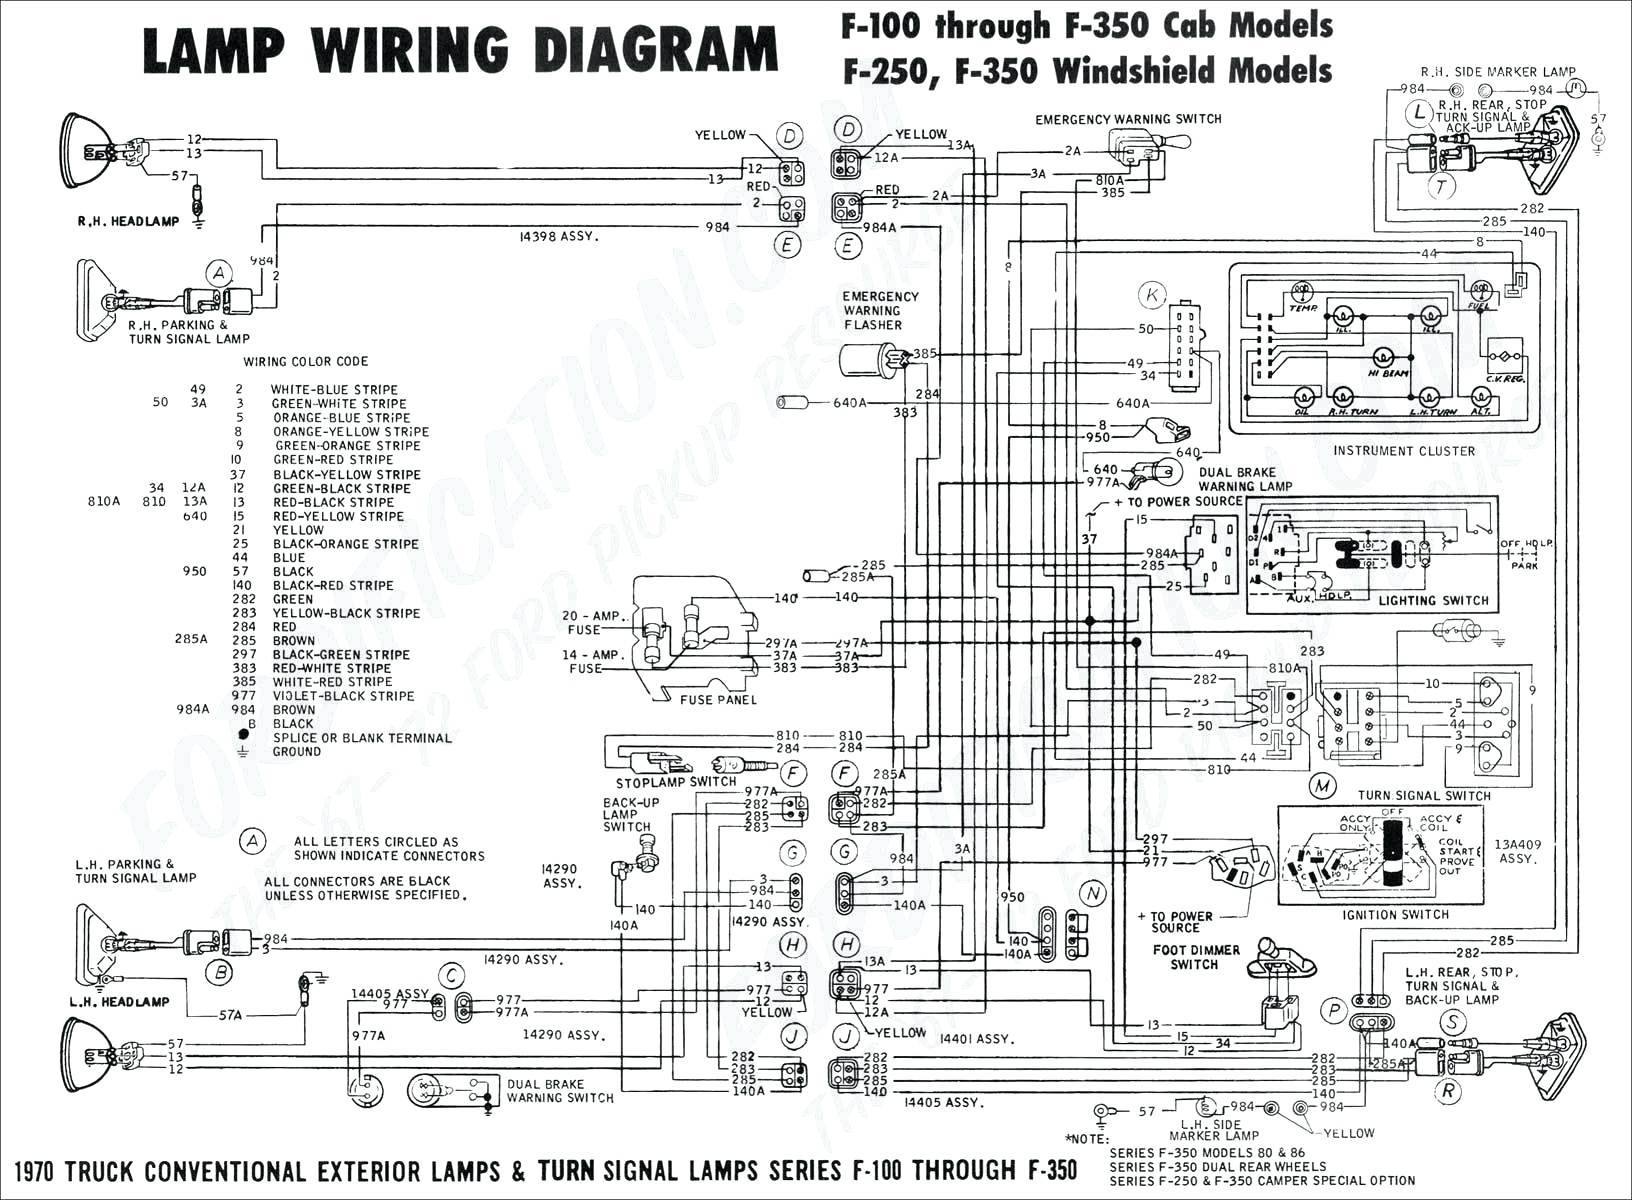 2001 Chevy Trailer Wiring Diagram - Wiring Diagrams Hubs - 2005 Silverado Trailer Wiring Diagram